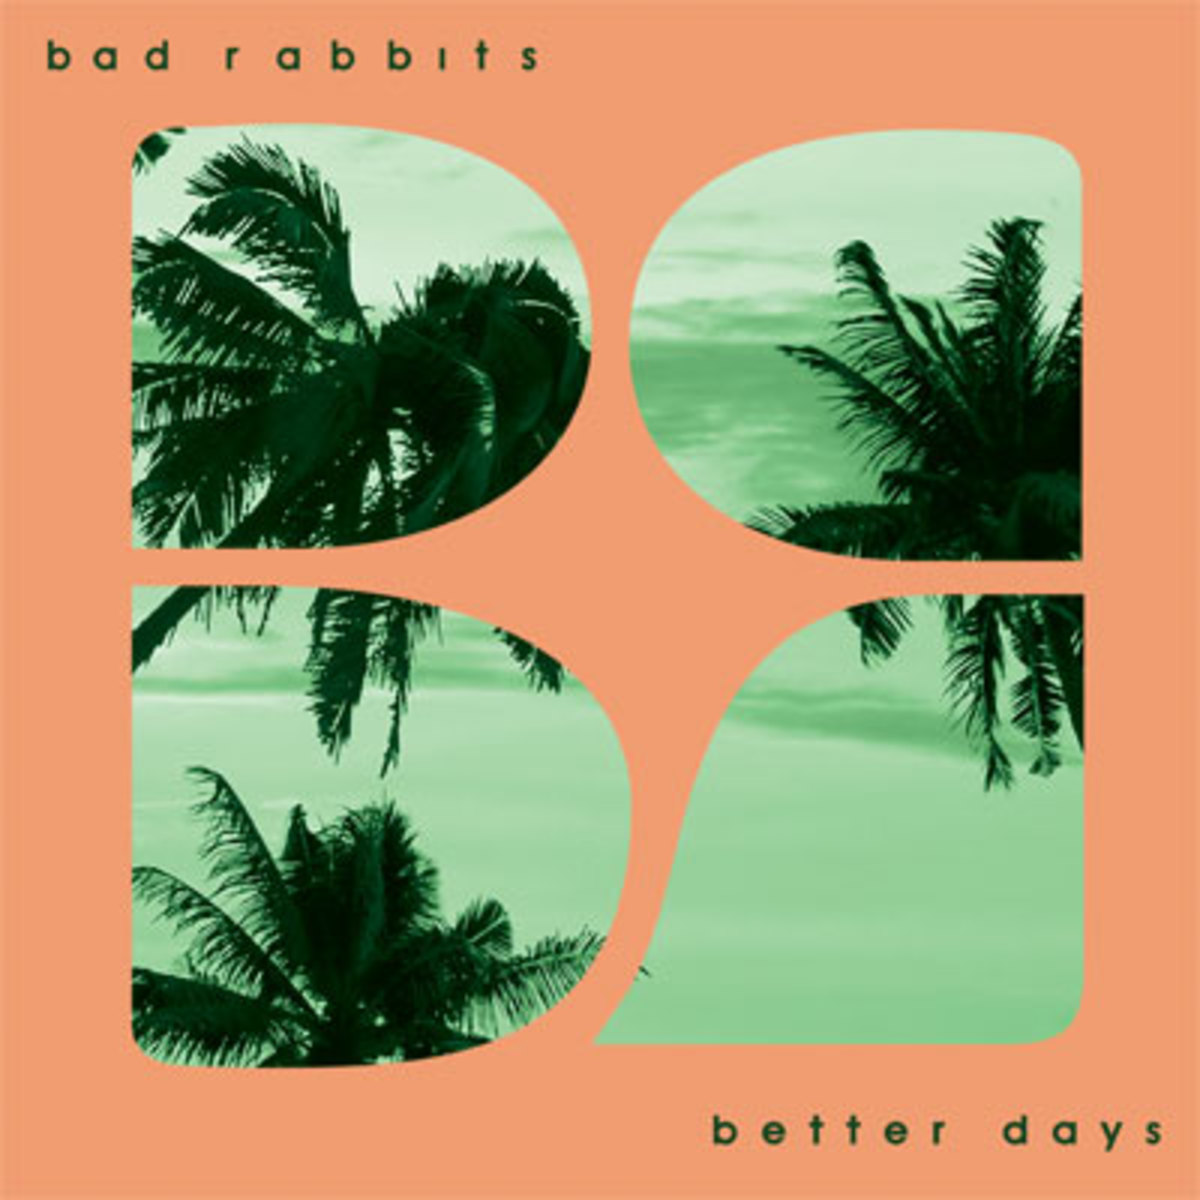 badrabbits-betterdays.jpg